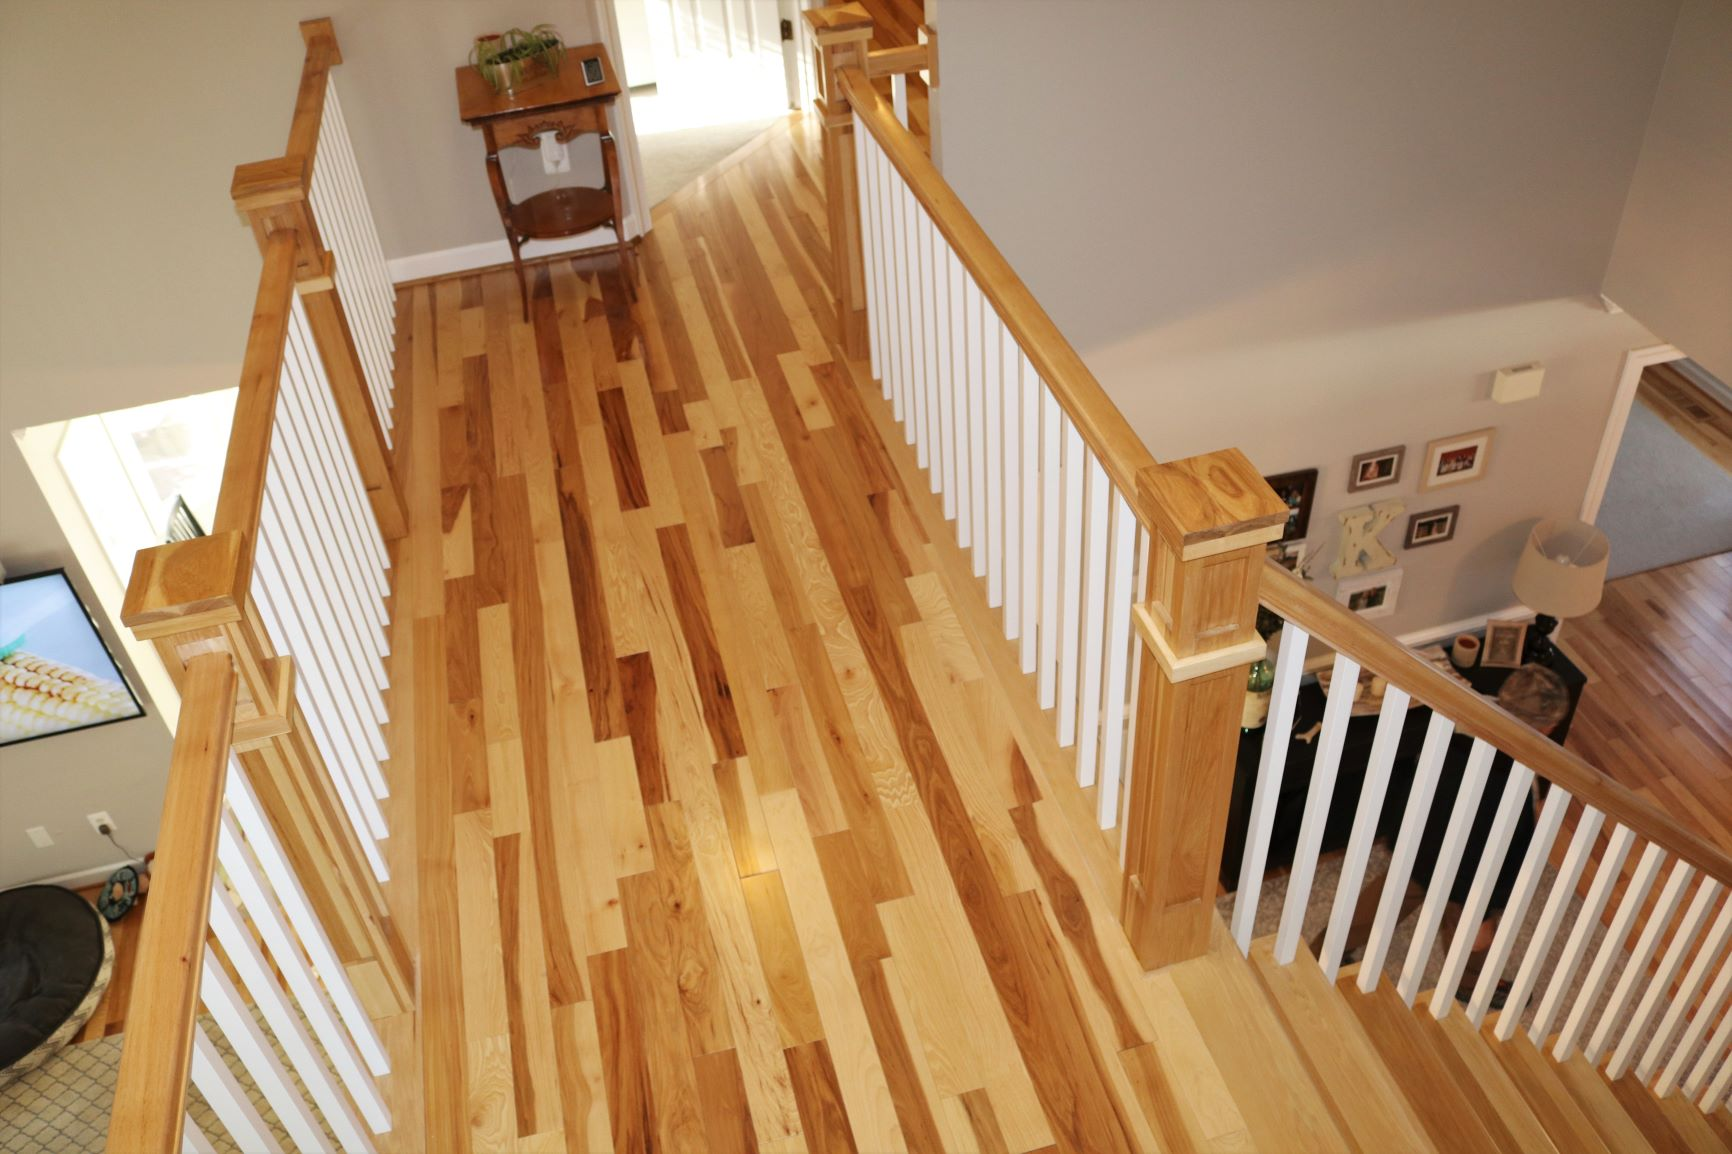 HickoryStairs-Full Remodel-ArlingtonVA-3